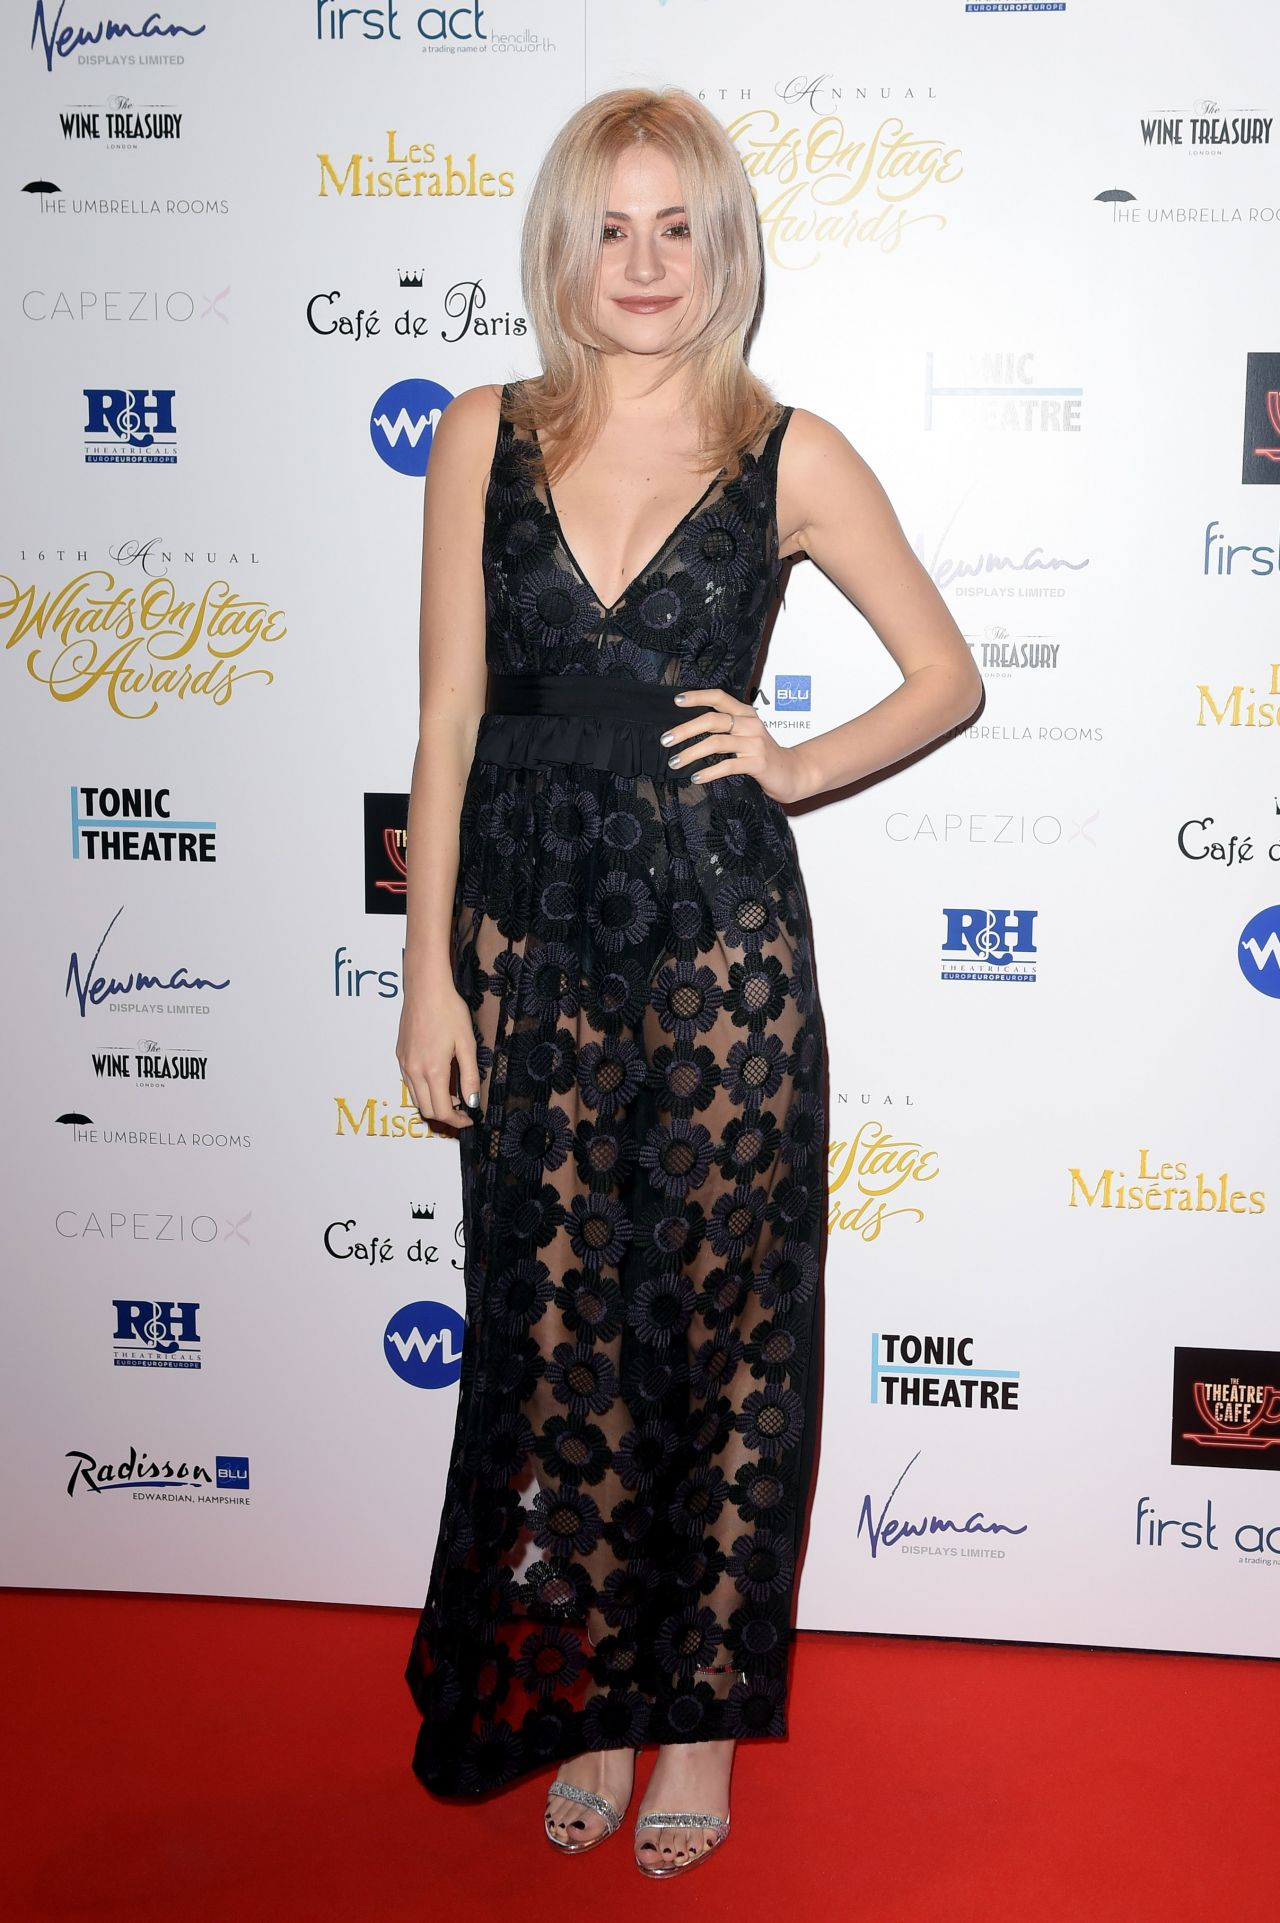 pixie-lott-2016-whatsonstage-awards-in-london-10